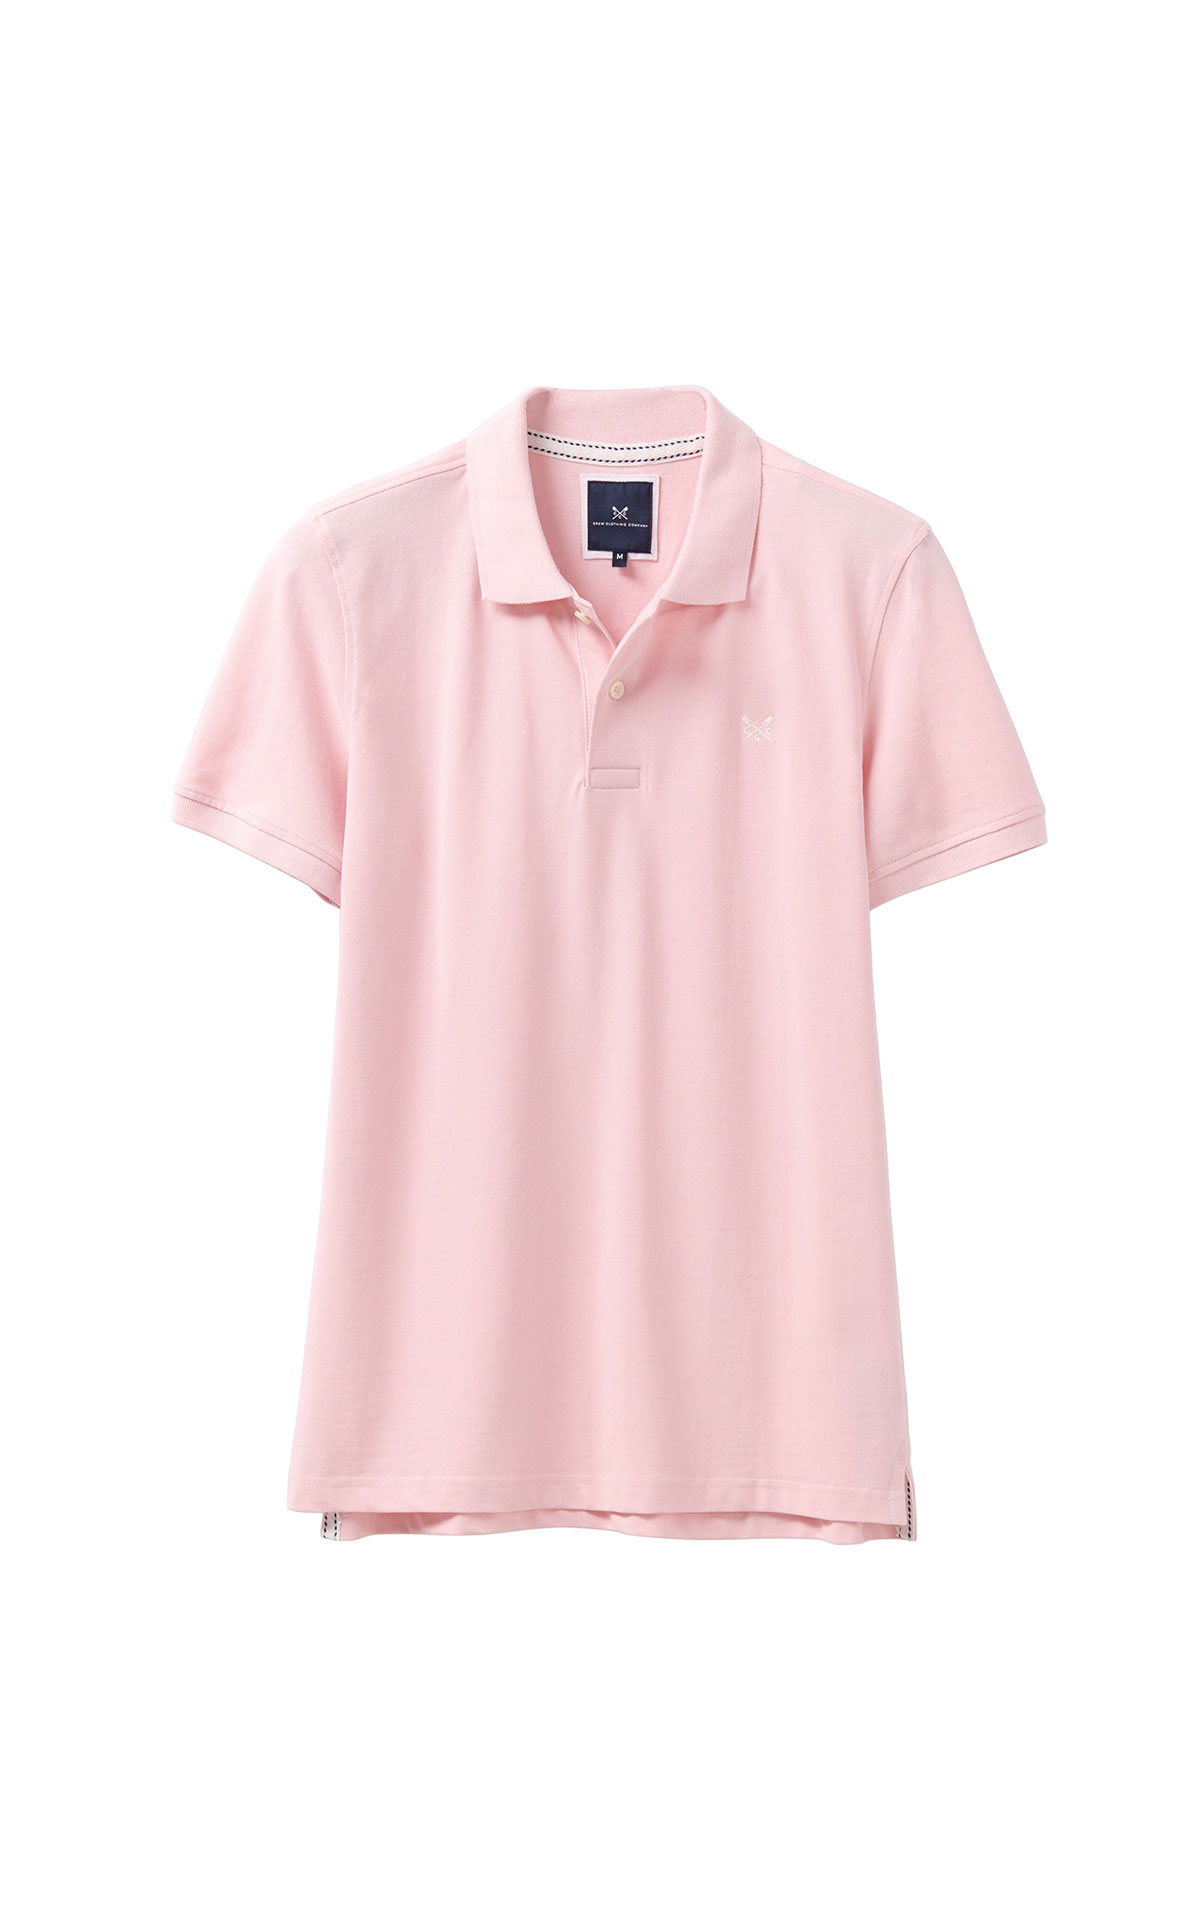 Savoy Taylors Guild Crew Clothing Company pink polo from Bicester Village